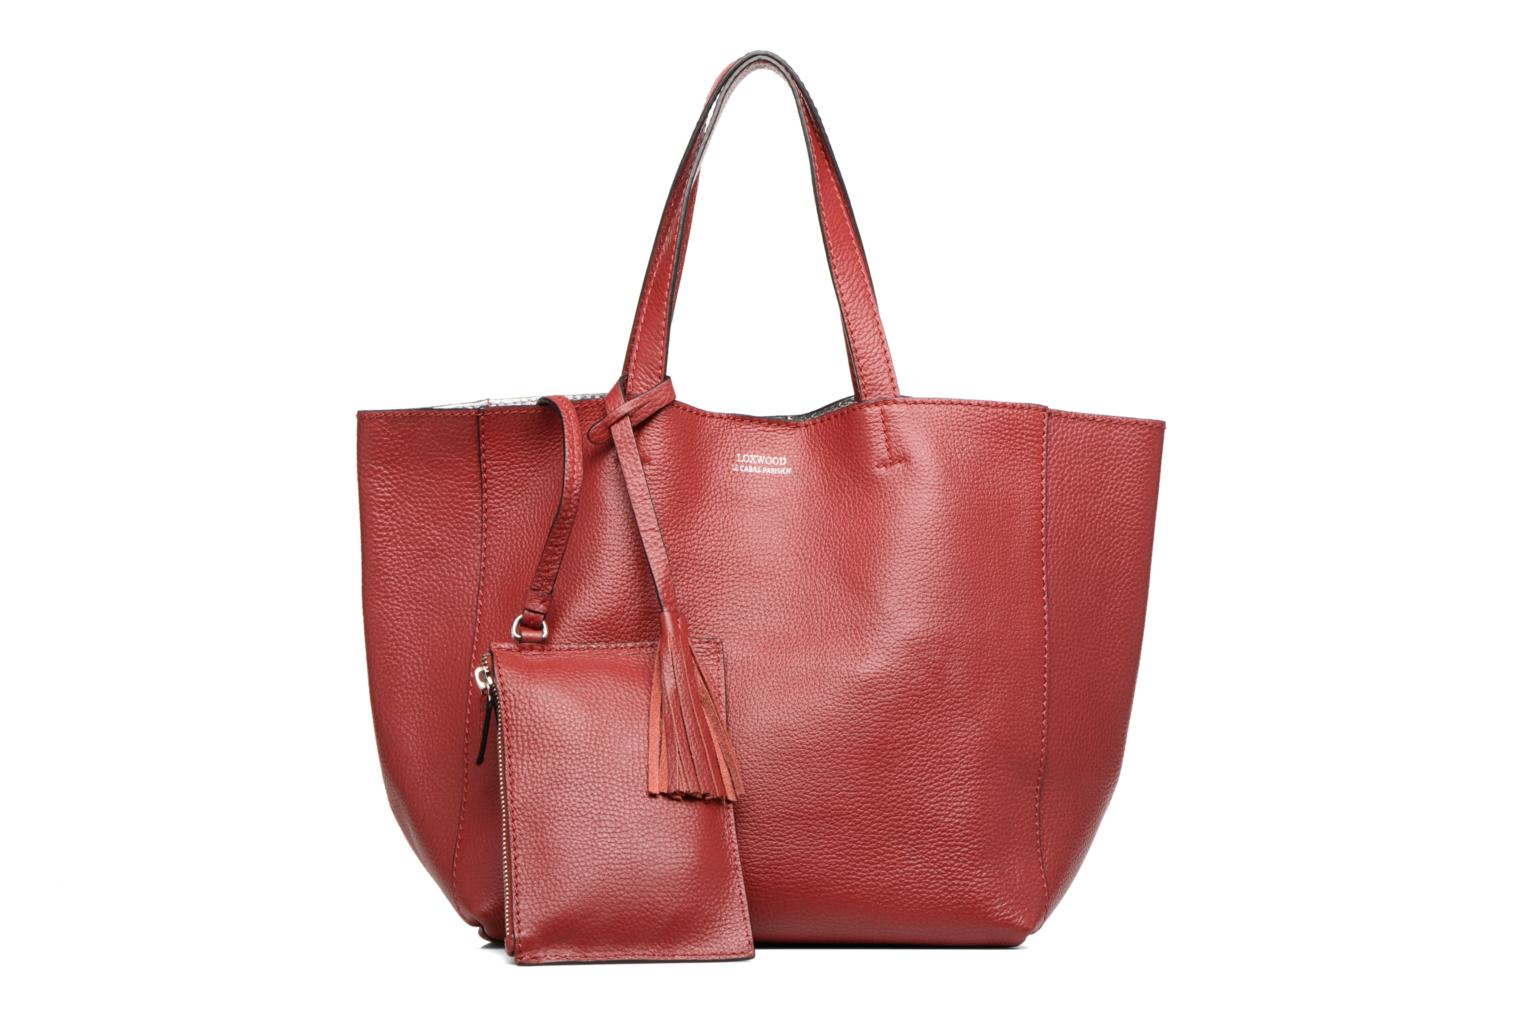 Handbags Loxwood Cabas Parisien Mm Red view from the left